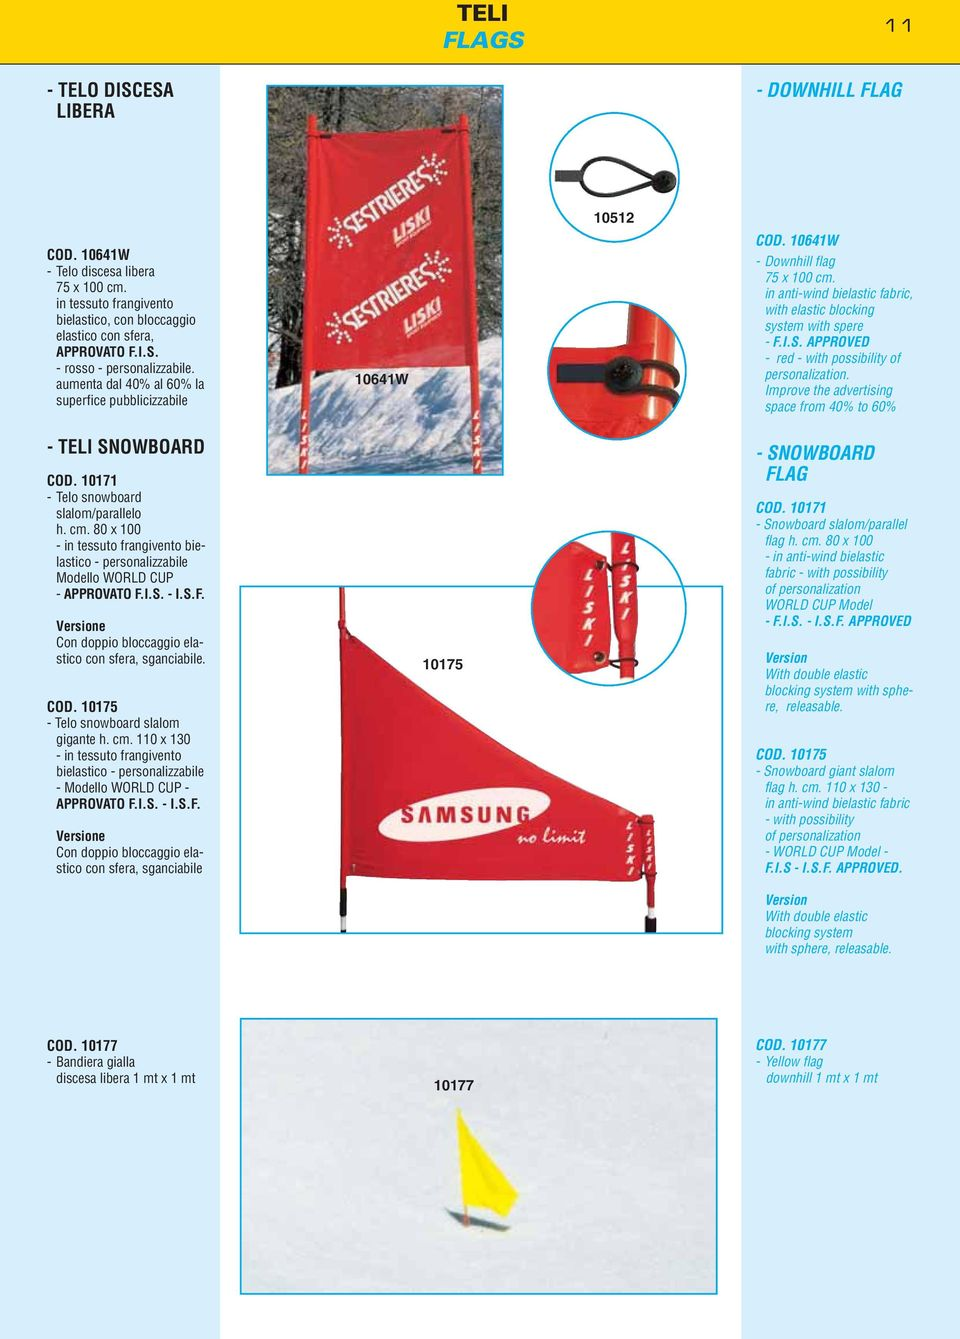 APPROVED - red - with possibility of personalization. Improve the advertising space from 40% to 60% - TELI SNOWBOARD COD. 10171 - Telo snowboard slalom/parallelo h. cm.